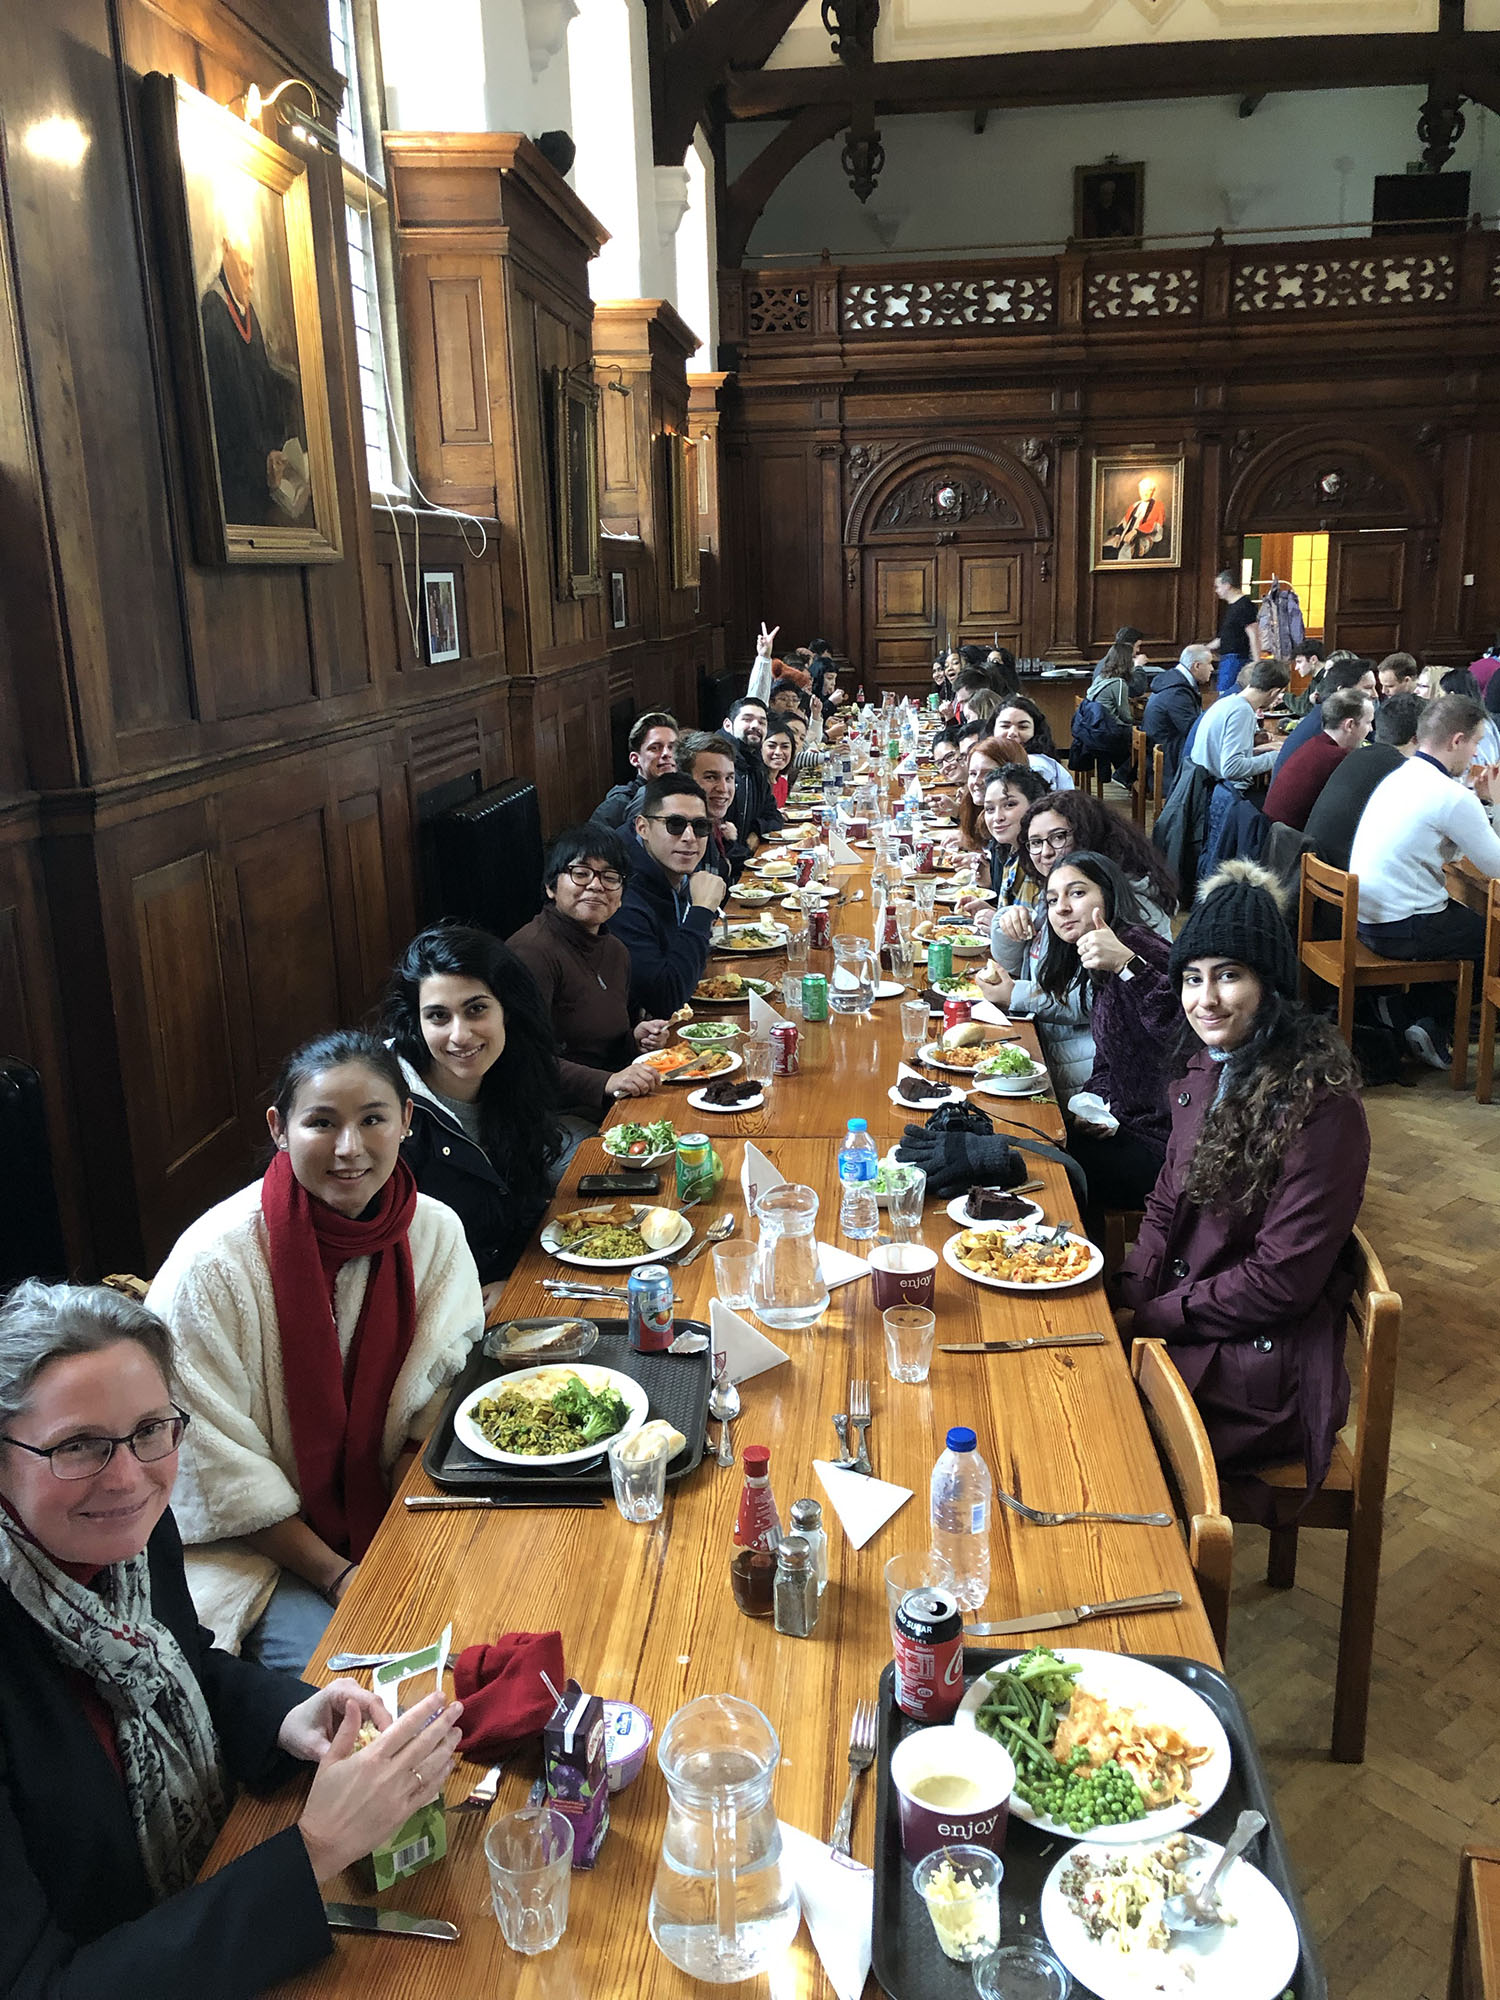 Fresno State students sit for lunch in the Selwyn College Cambridge Dining hall with Sarah MacDonald (bottom left) organist and choirmaster at Selwyn College.